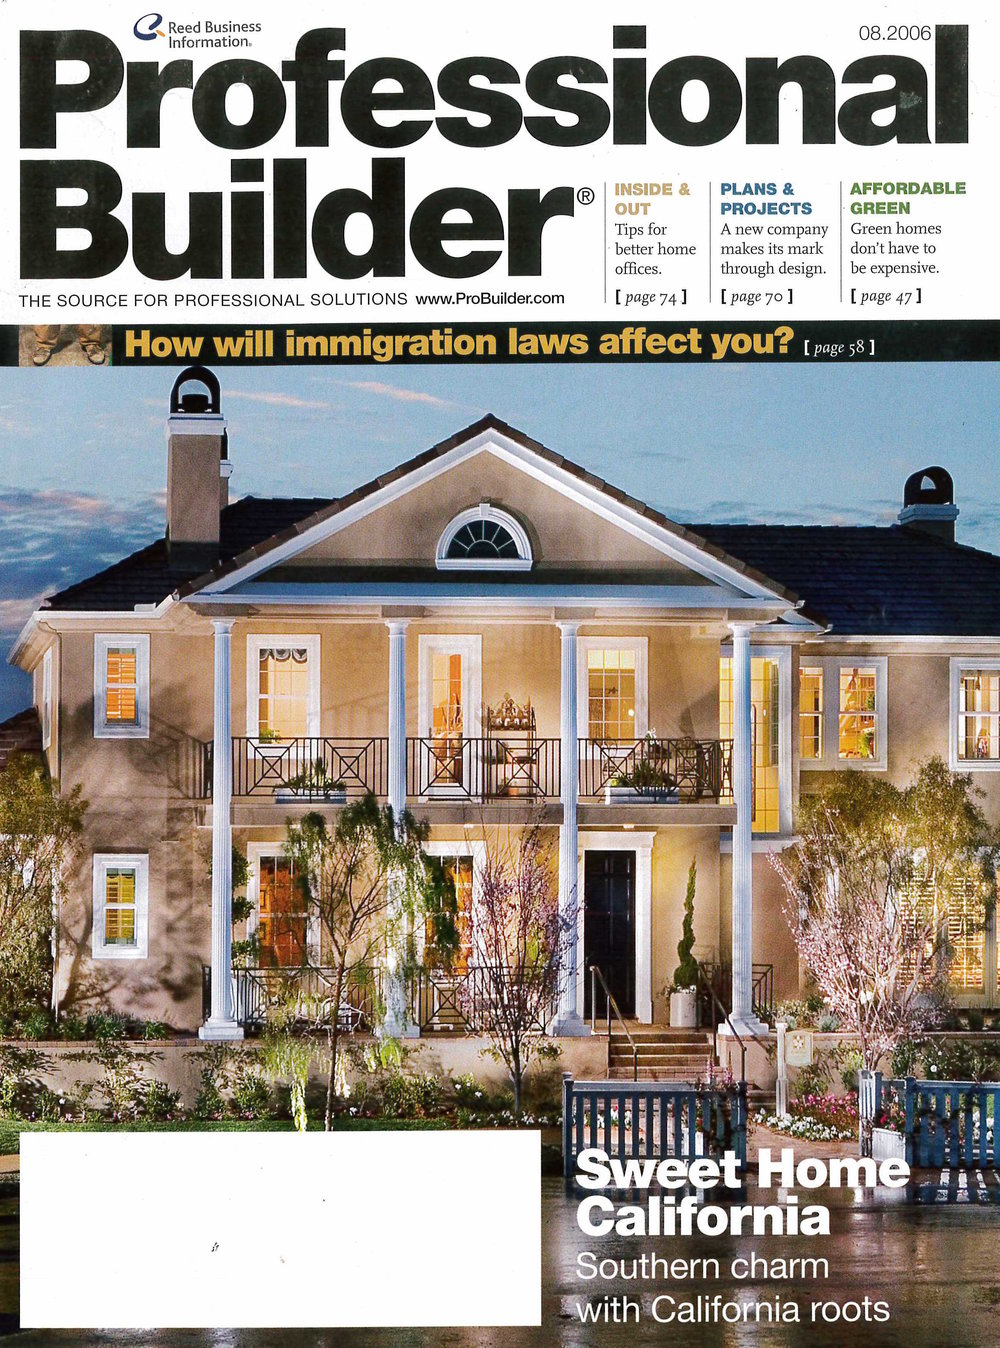 bb49b-professional-builder-cover.jpg